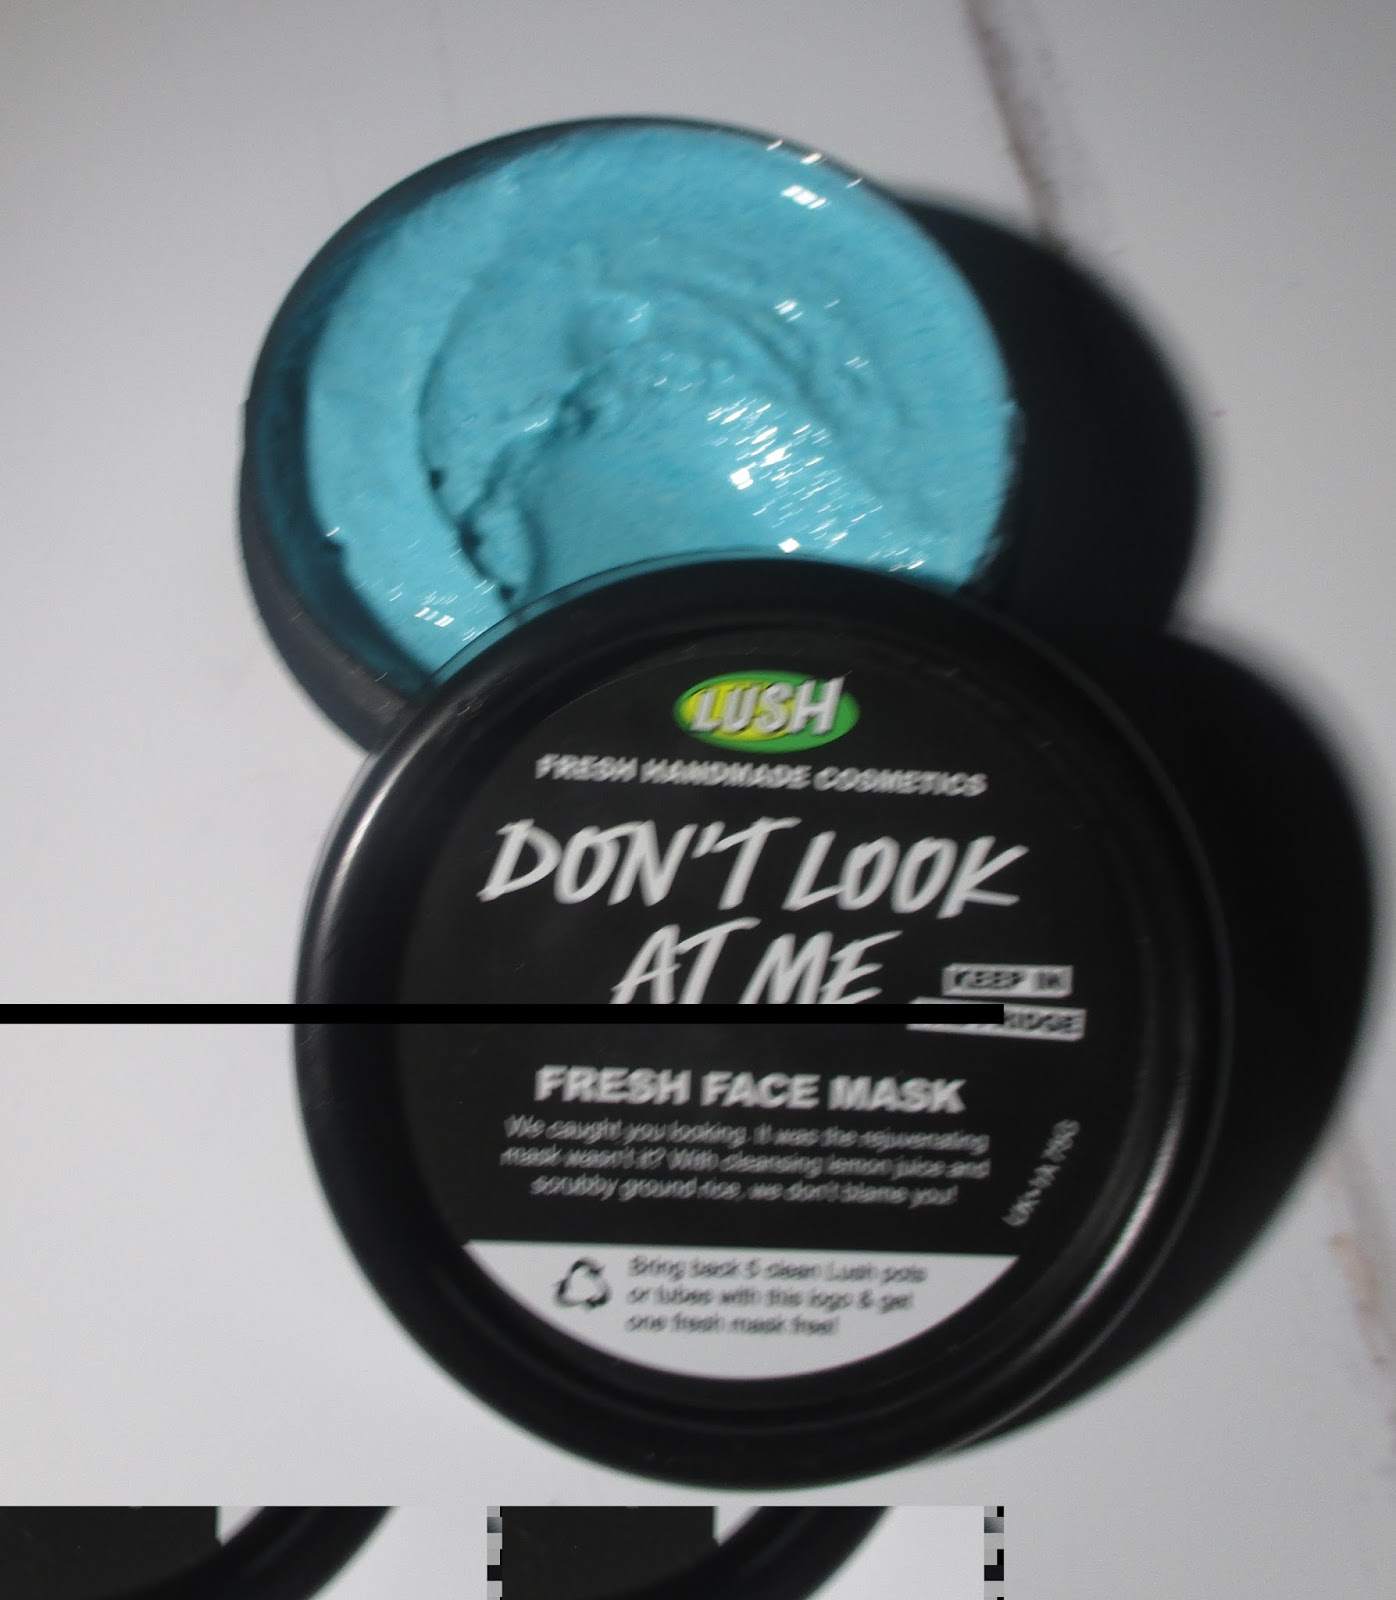 Dont look at me lush face mask review - Lush Don T Look At Me Facemask Review As Some Of You May Know I Am Obsessed With Lush For Me It Is Not Only The Bath Products Which I Adore It Is All The